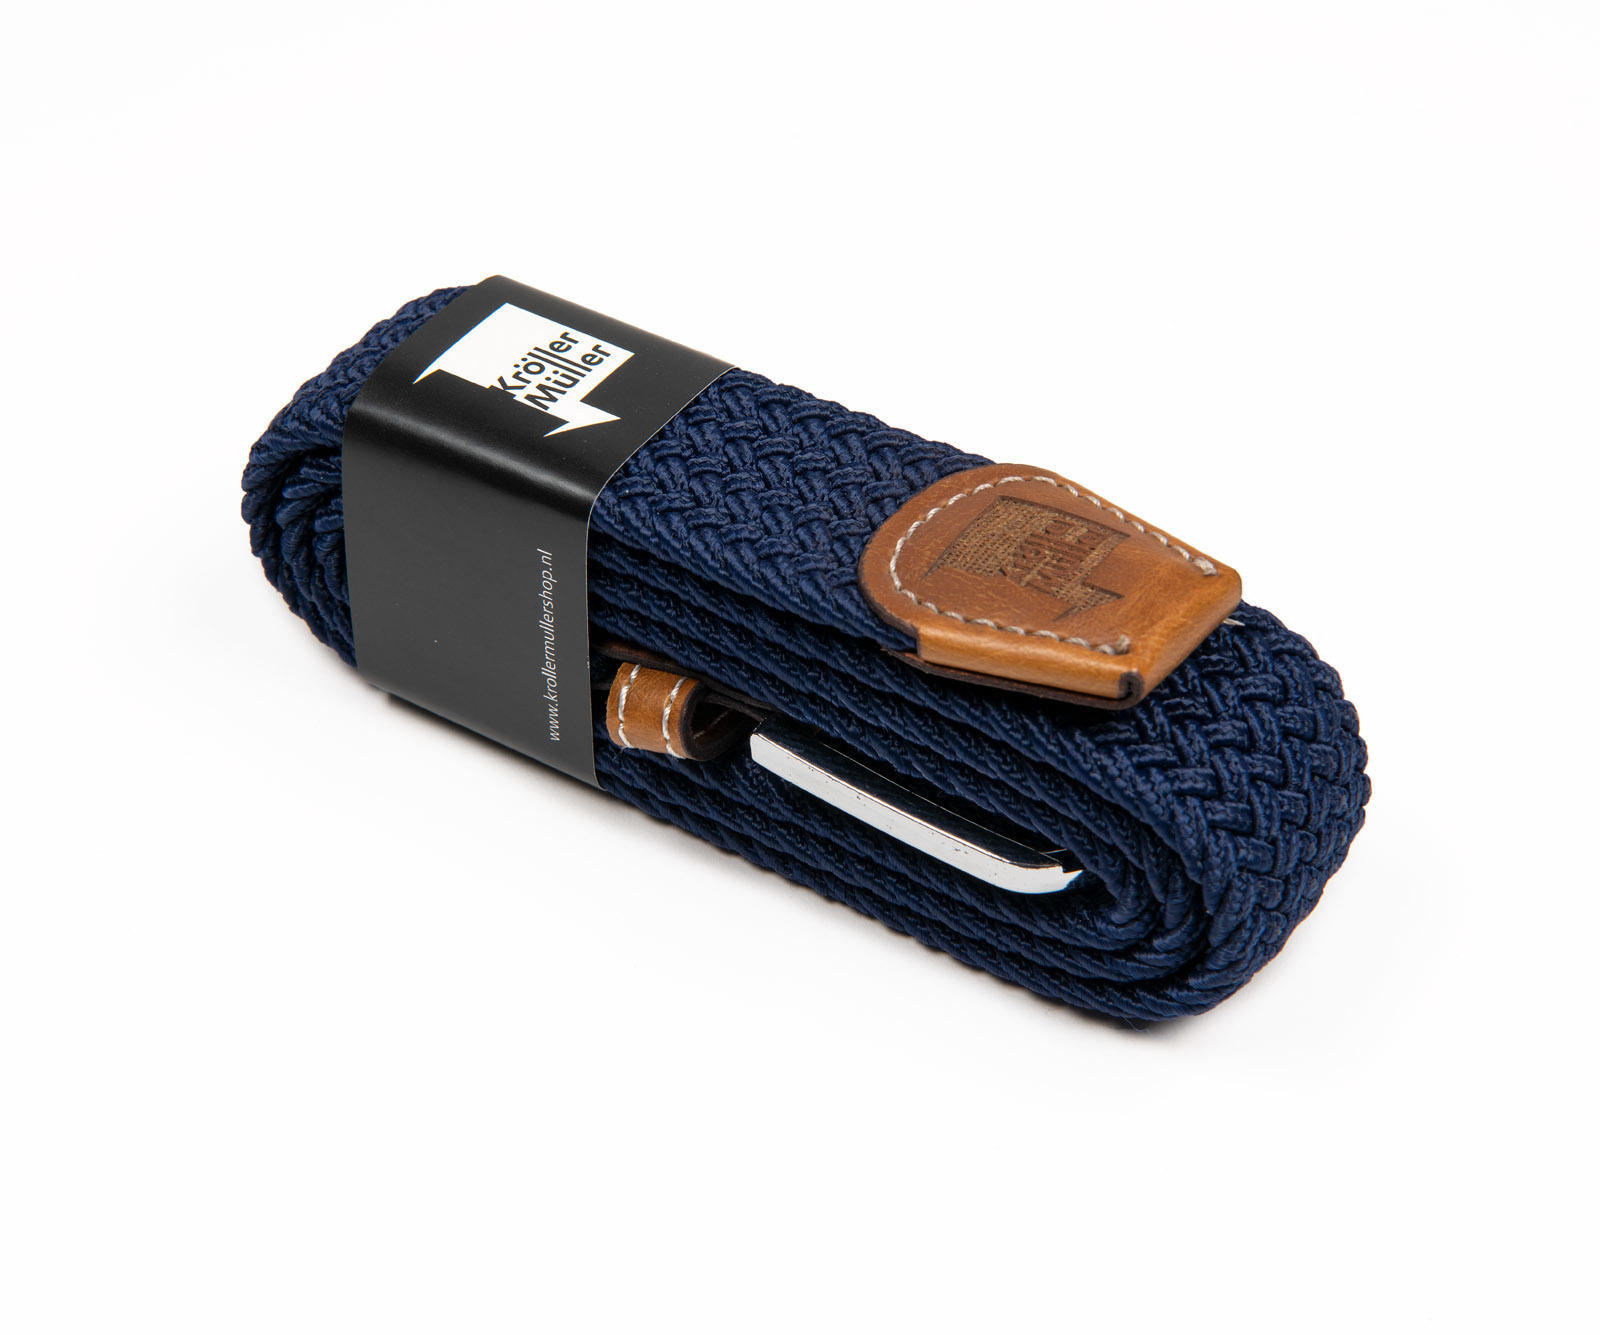 Belt with leader navy